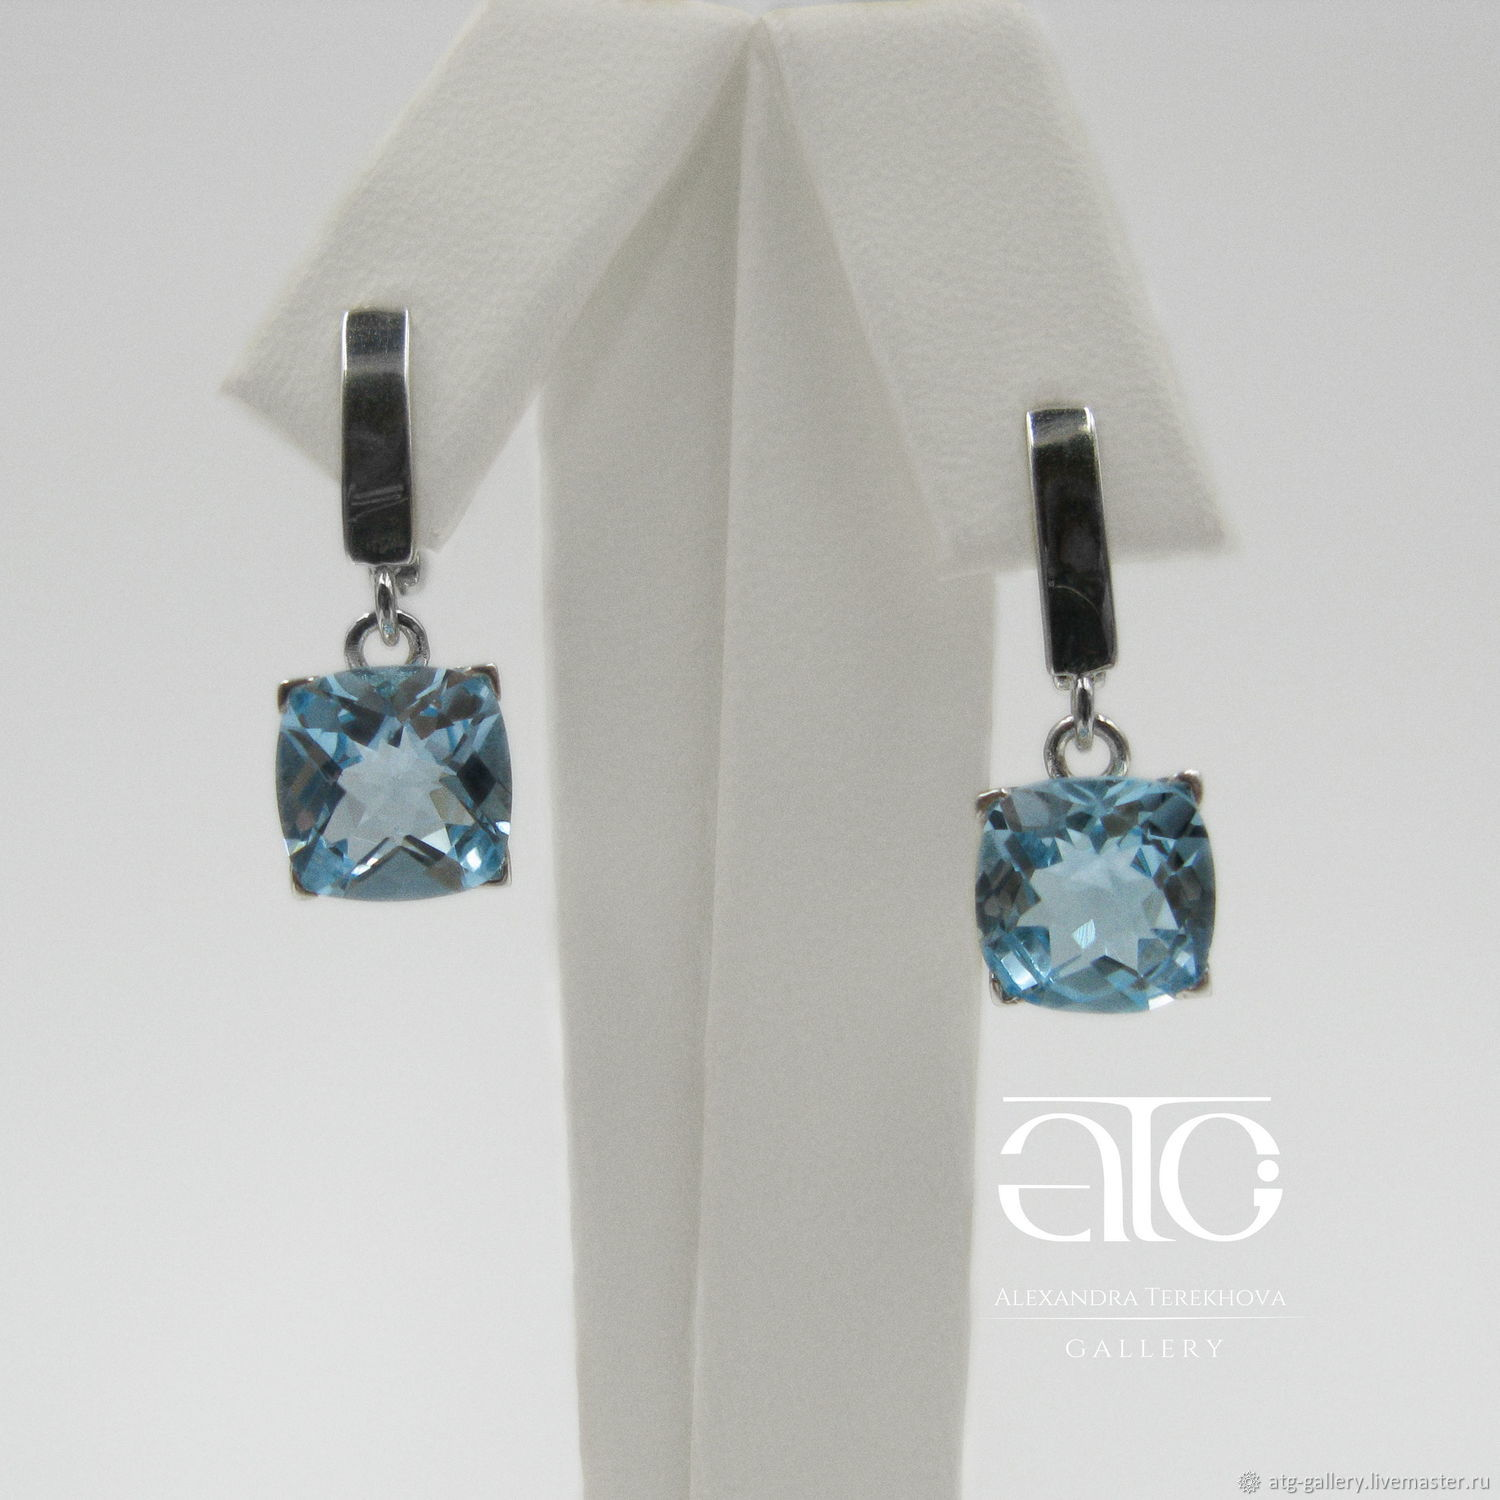 THE ONLY INSTANCE! Wonderful earrings with Sky blue Topaz stones every day! Very beautiful stones, brilliant cut!